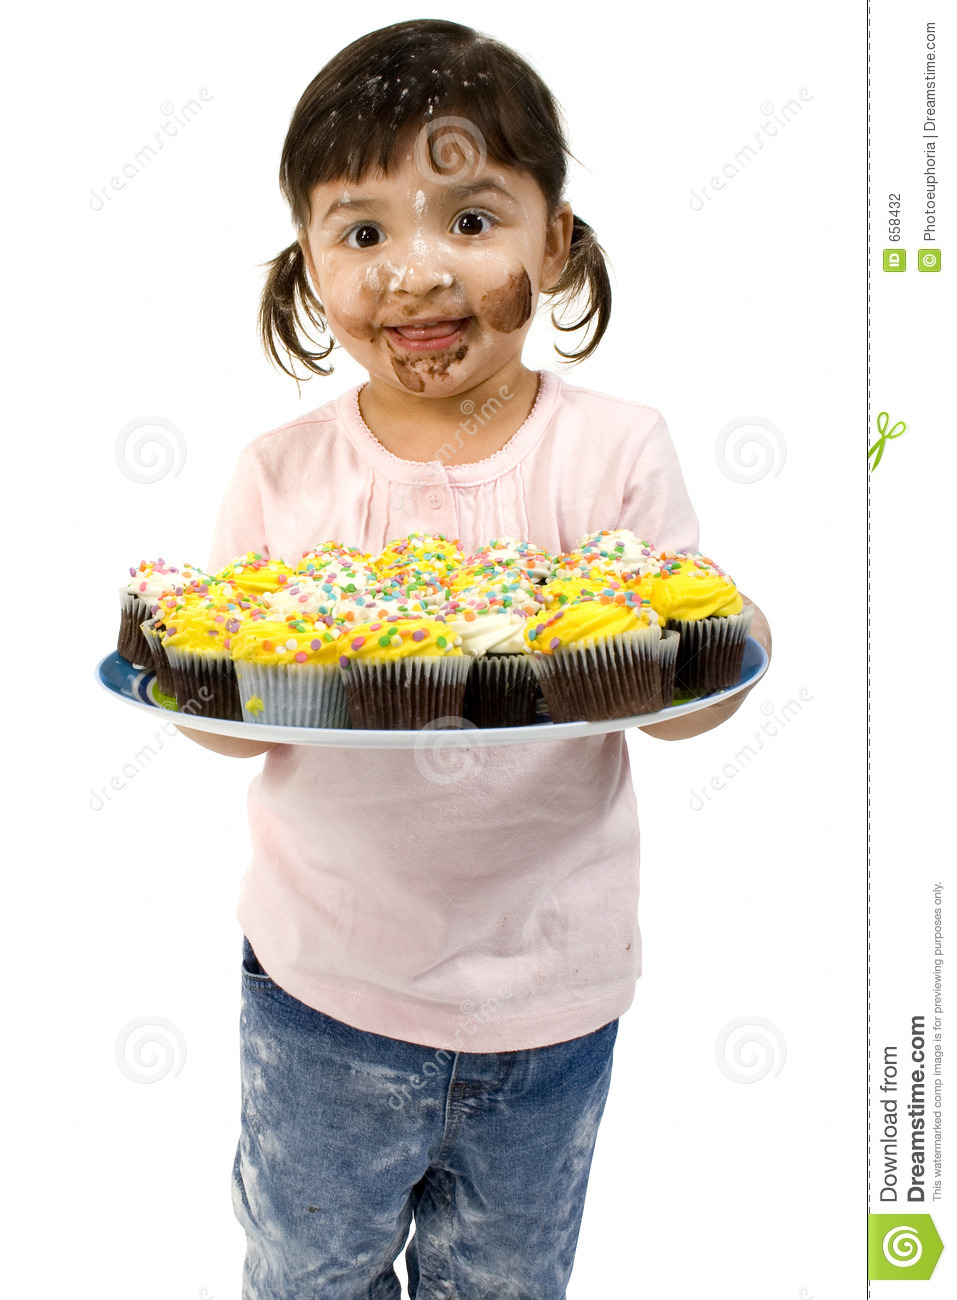 Adorable Toddler Girl with Cupcakes